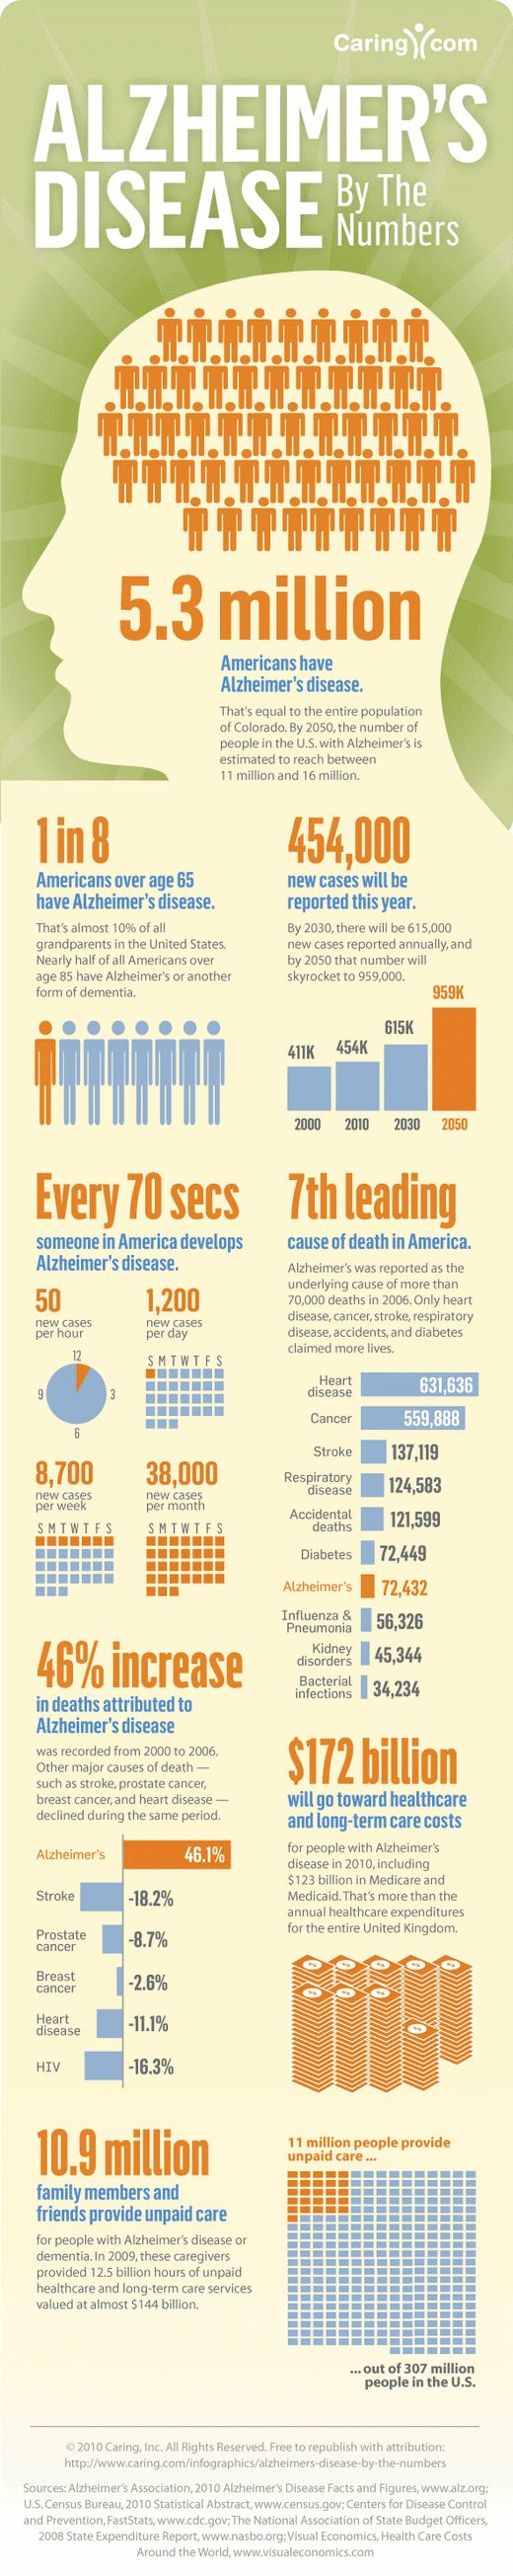 Alzheimers disease by the numbers.